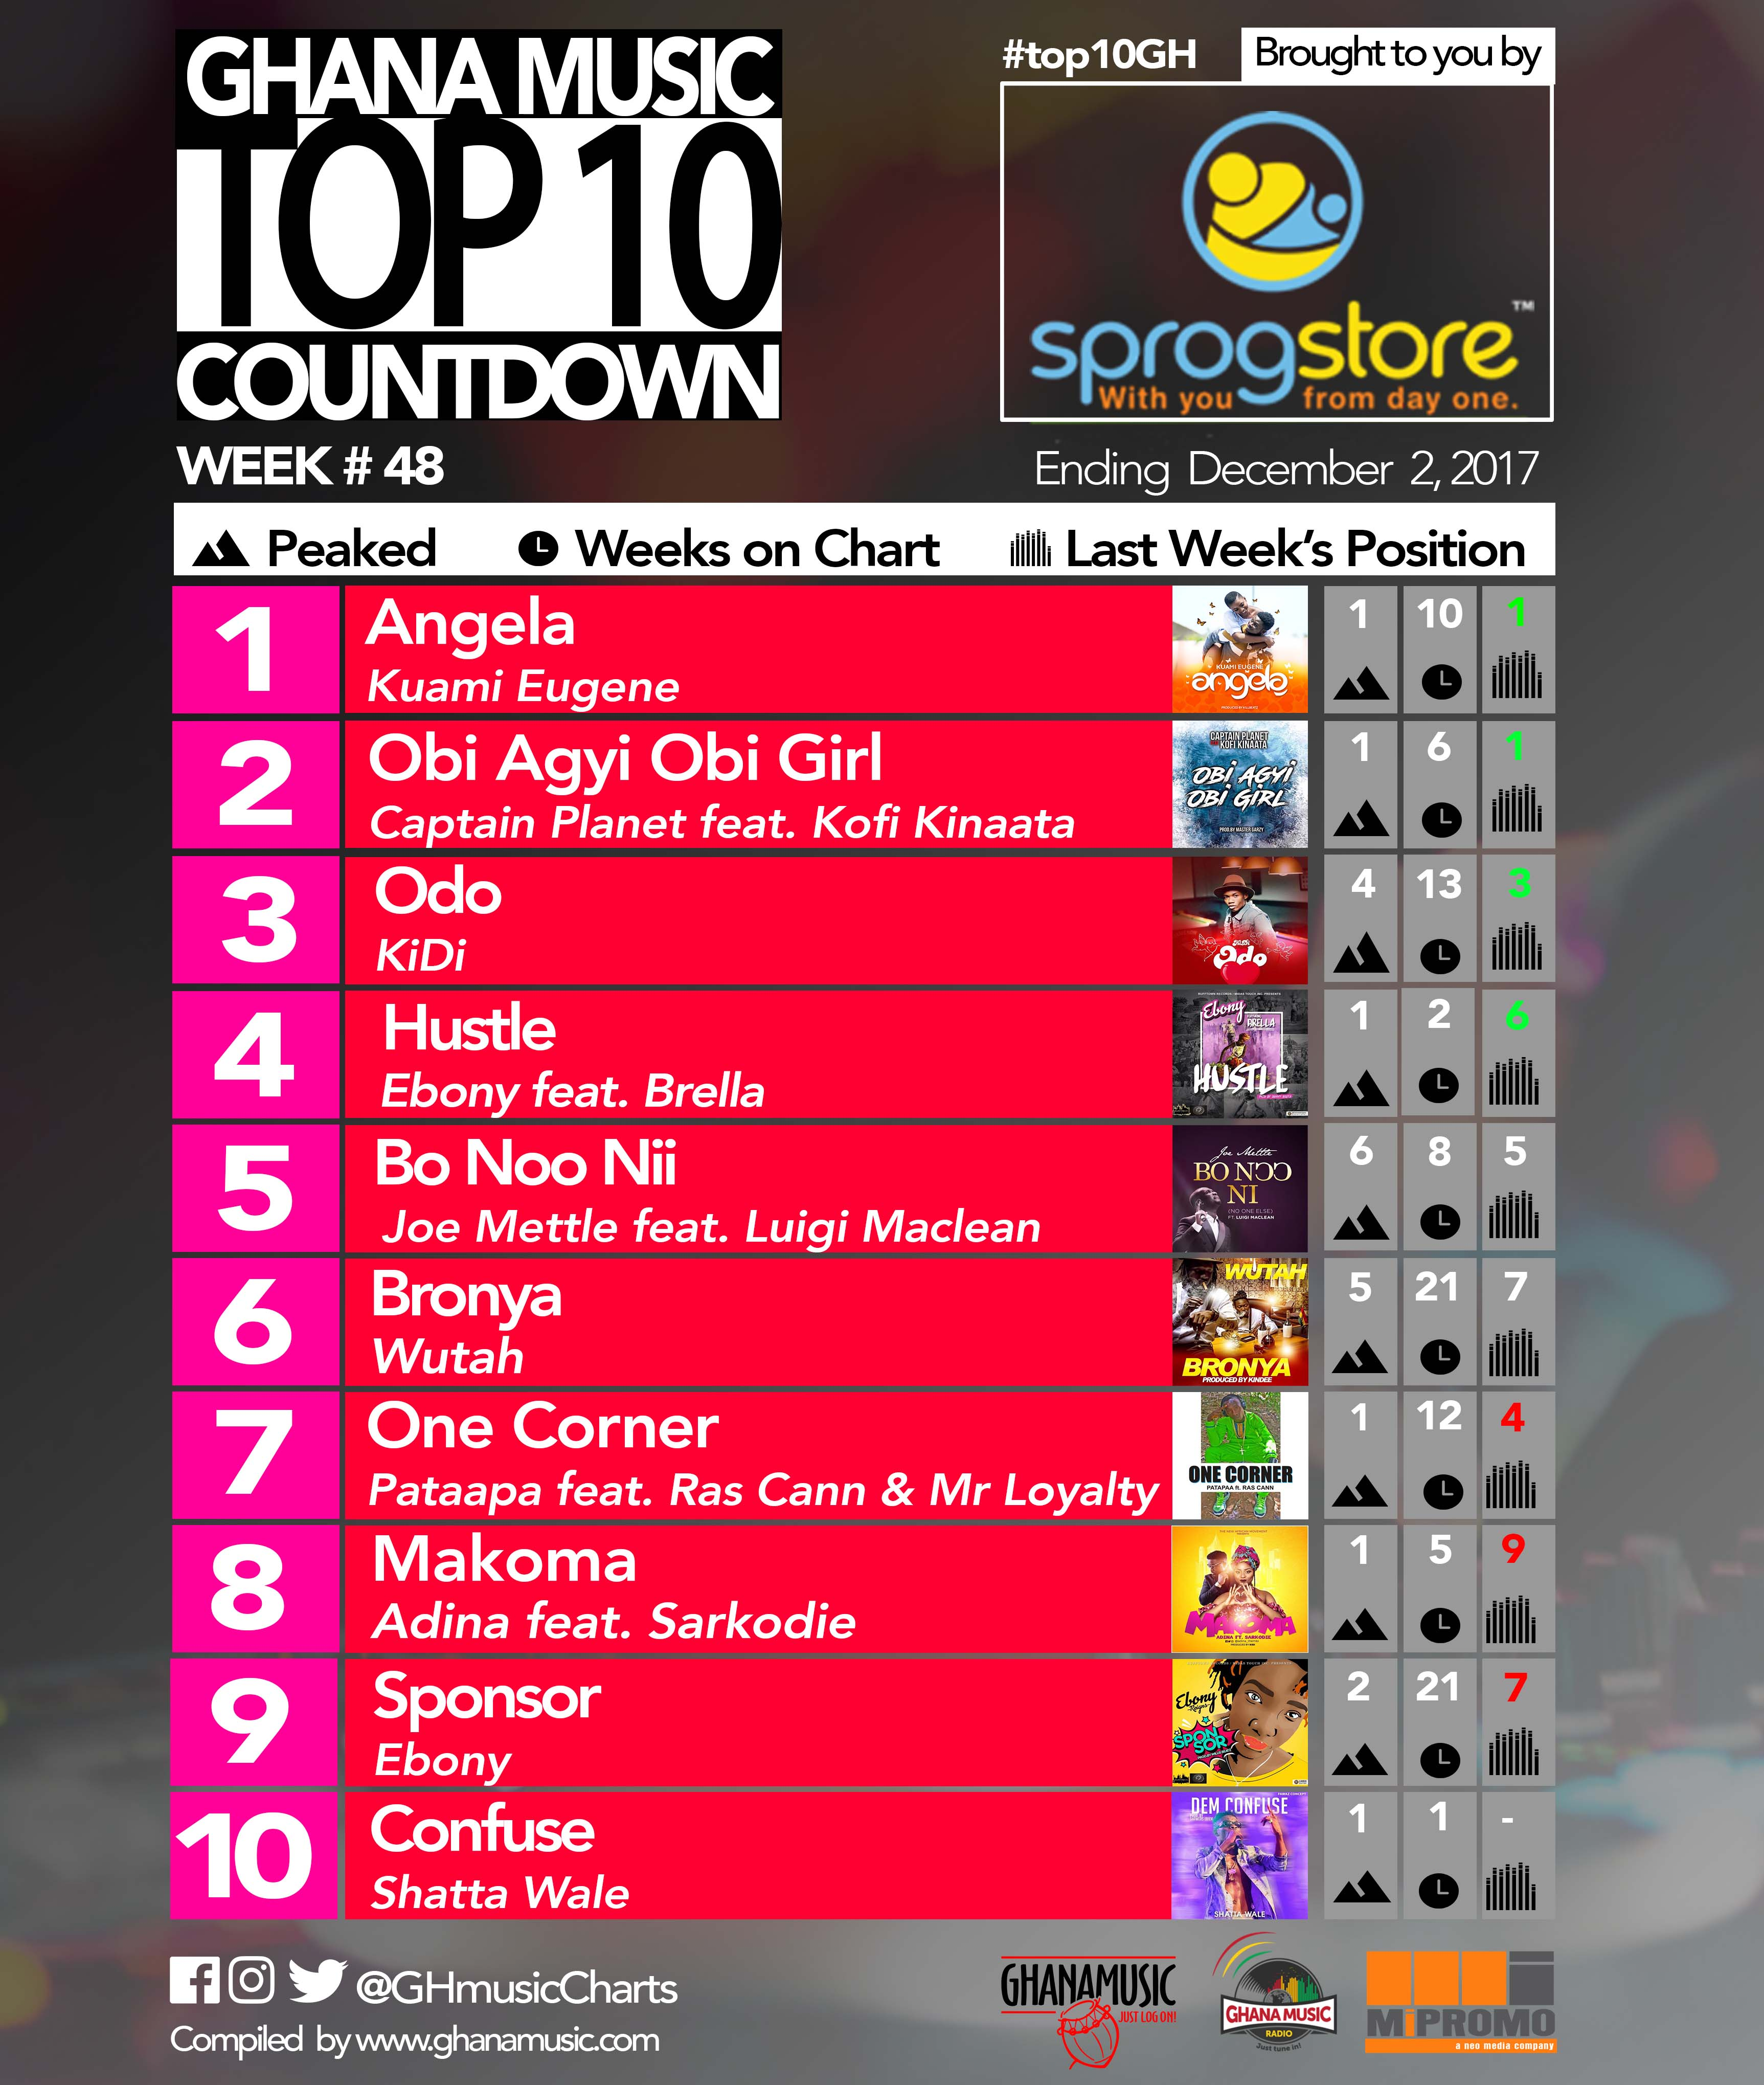 Week #48: Week ending Saturday, December 2nd, 2017. Ghana Music Top 10 Countdown.